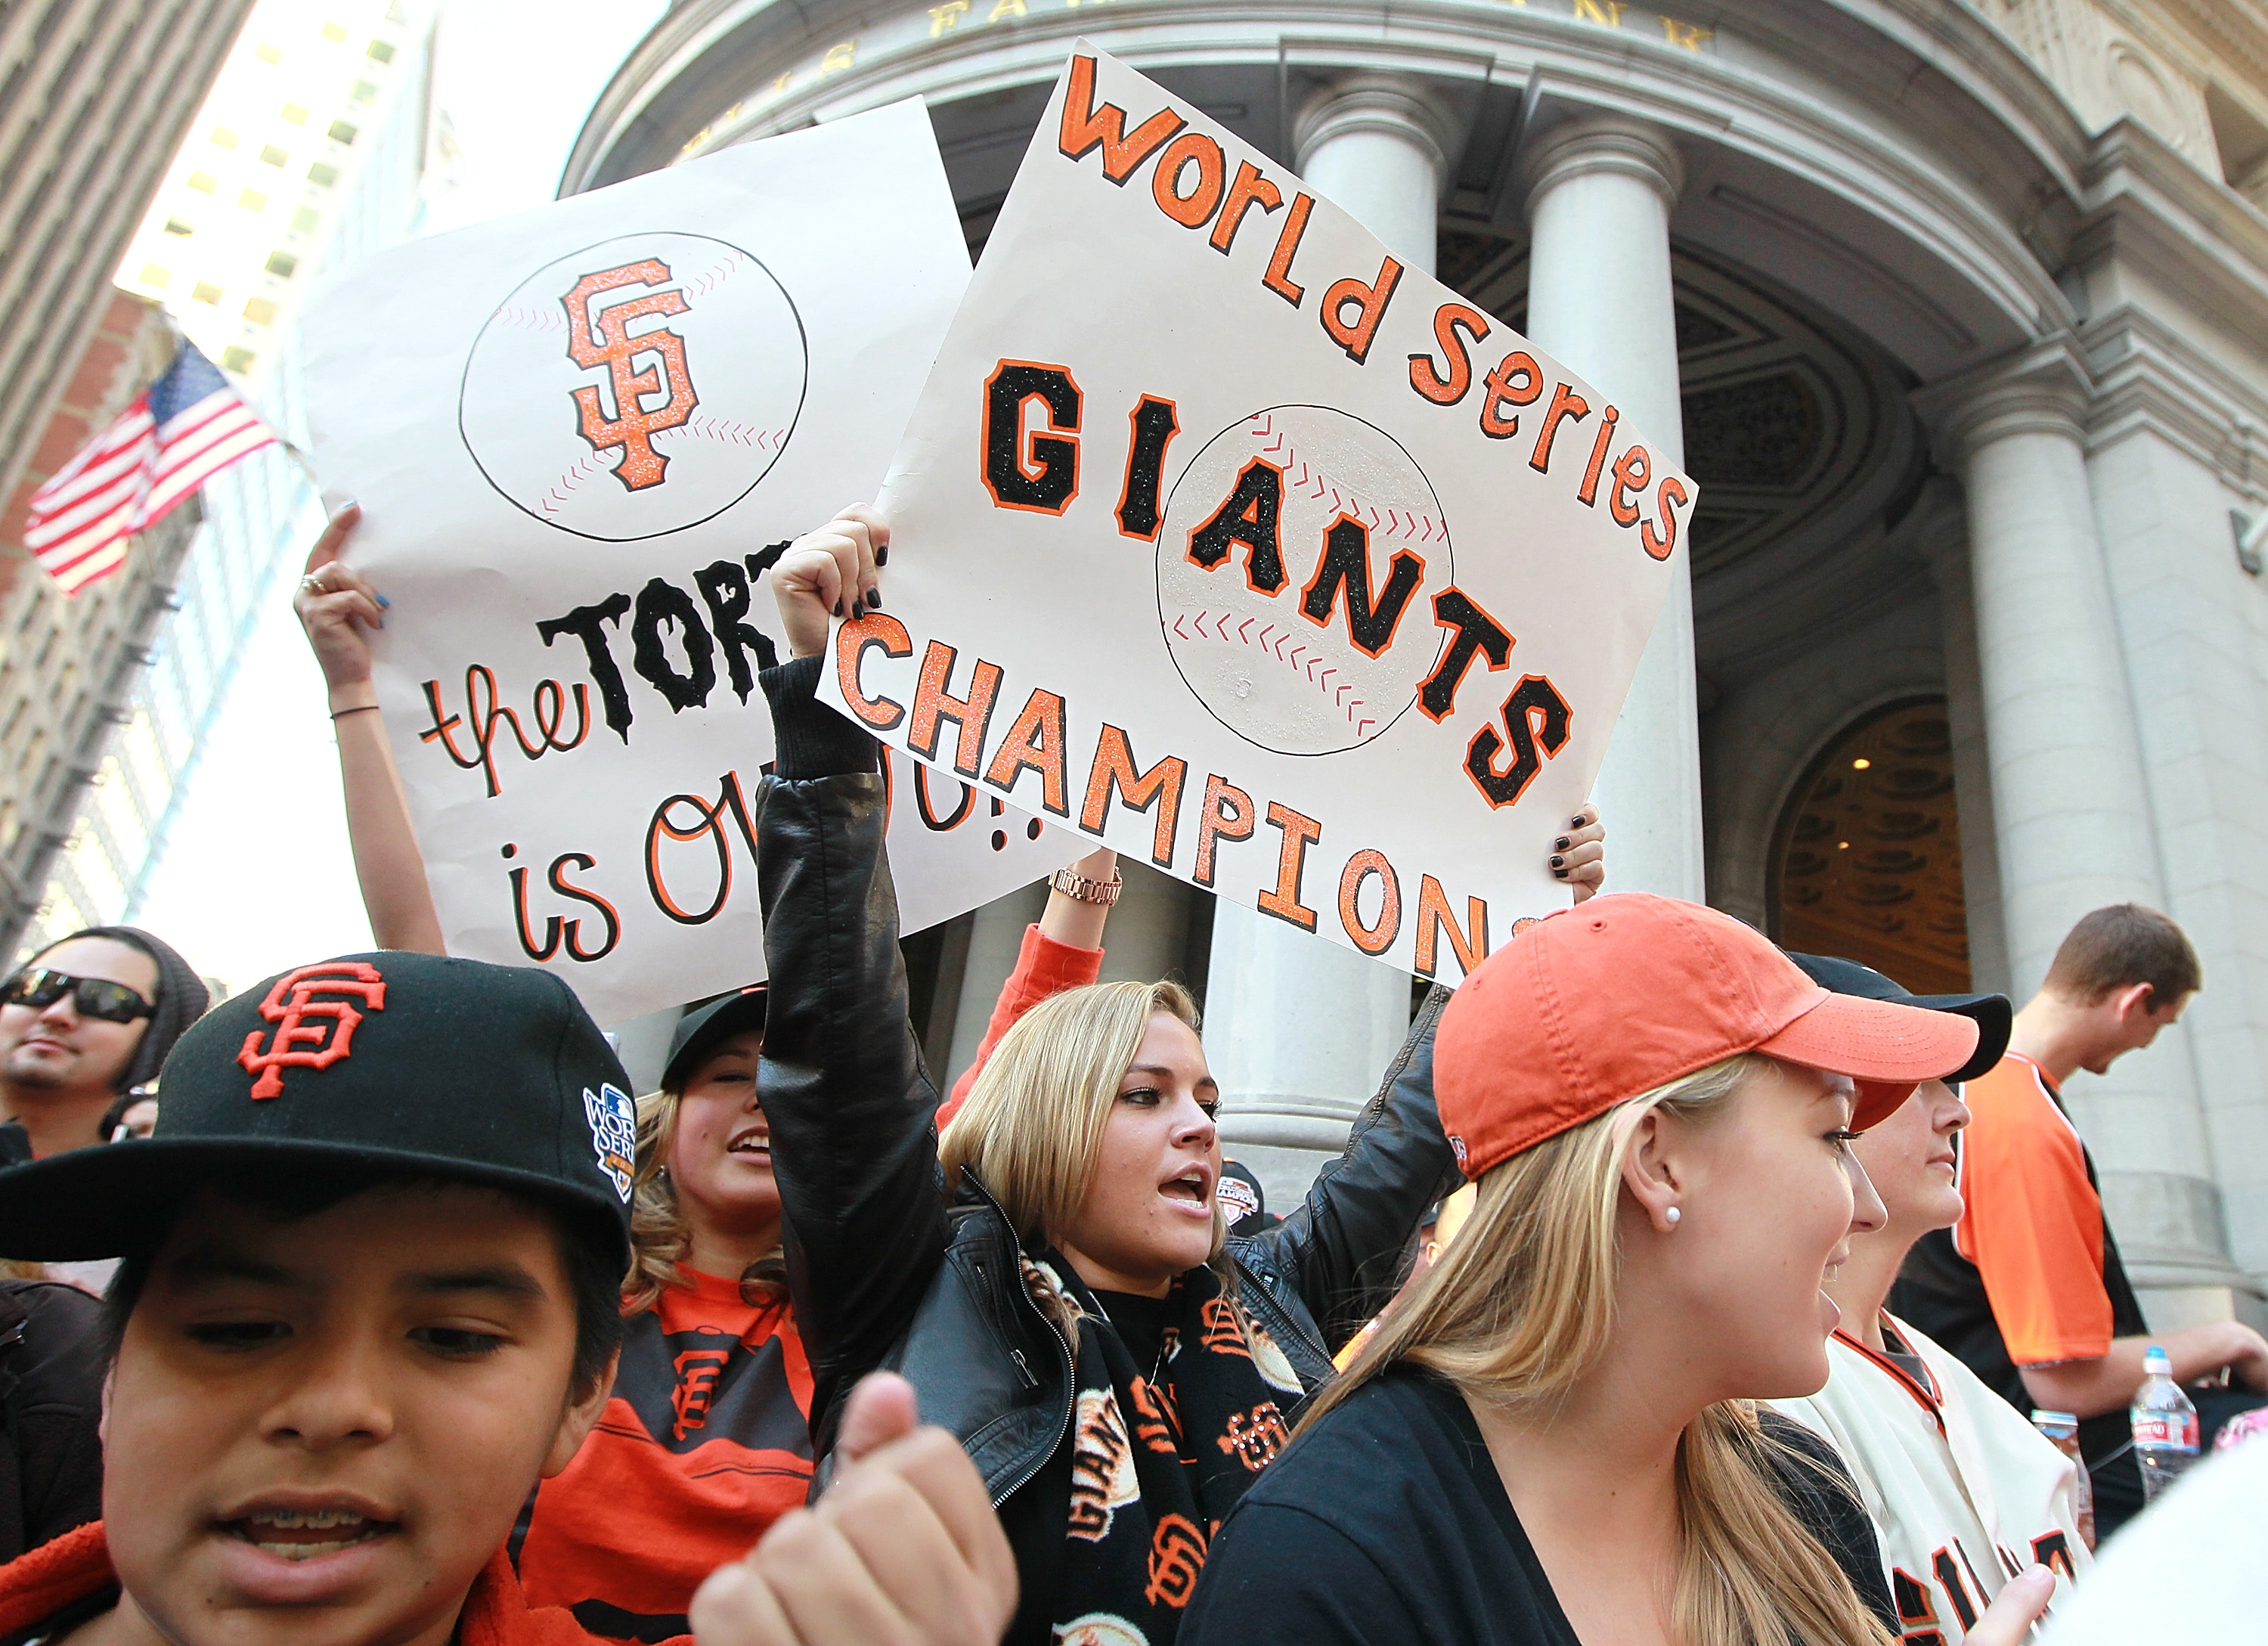 SAN FRANCISCO - NOVEMBER 03: San Francisco Giants wave signs as they wait for the start of the Giants' victory parade on November 3, 2010 in San Francisco, California. Thousands of Giants fans lined the streets of San Francisco to watch the San Francisco